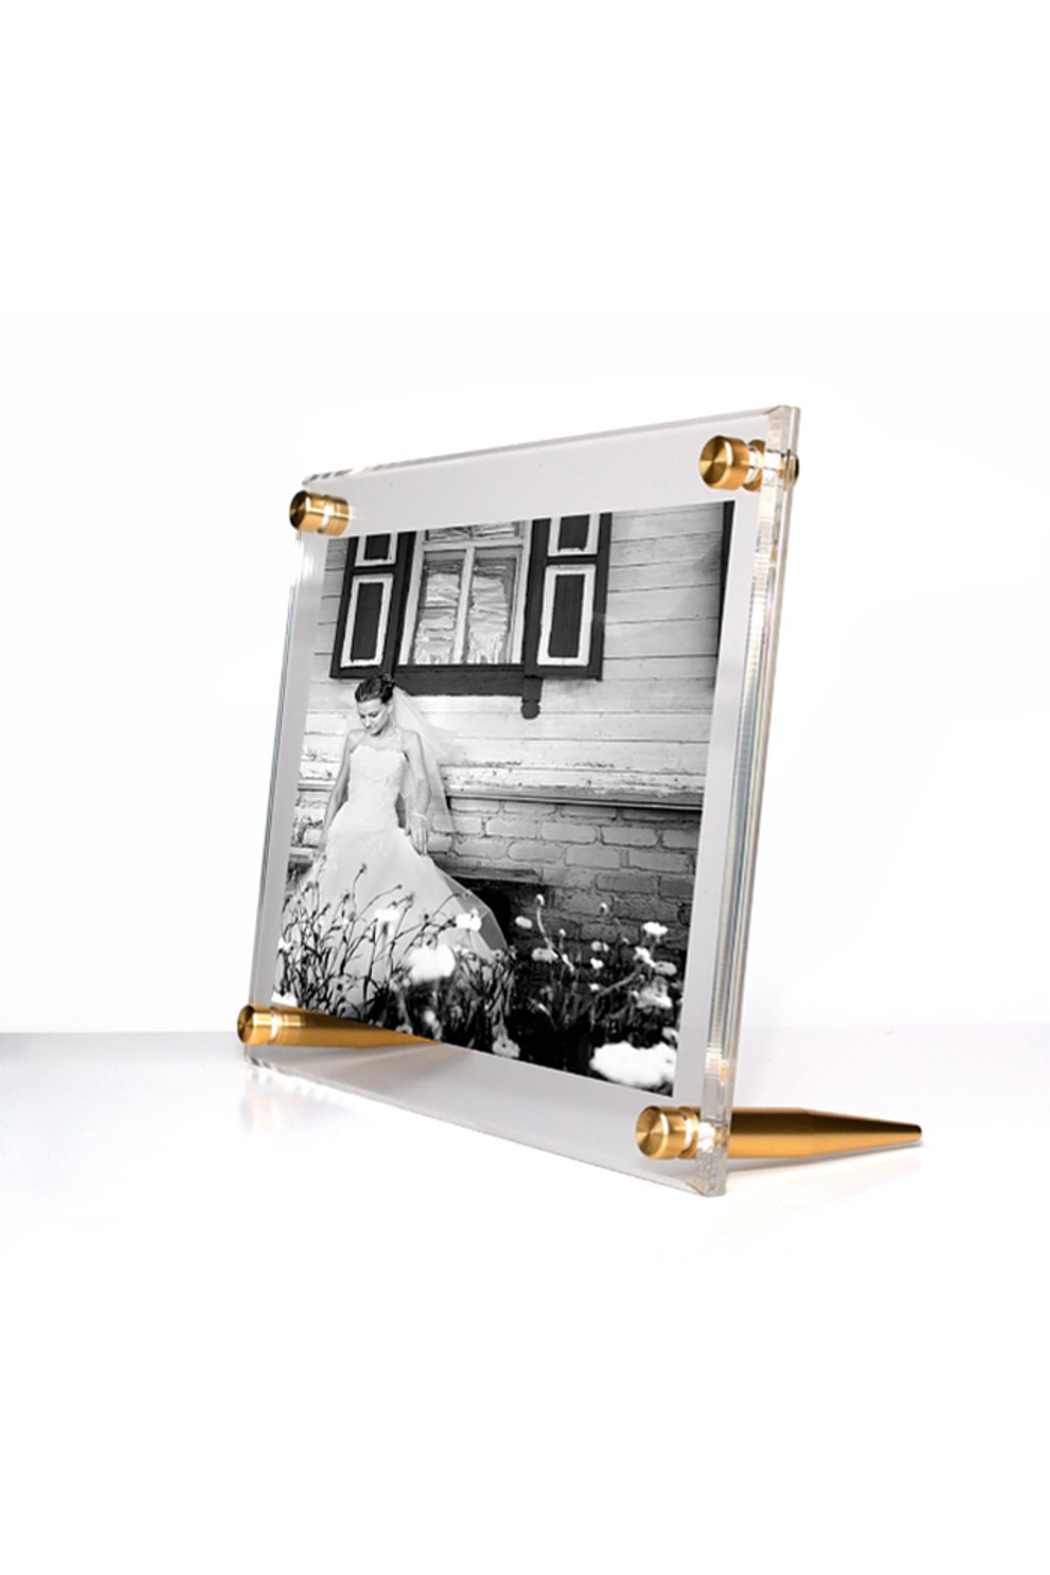 The Birds Nest 8X10-TABLETOP ACRYLIC FRAME (GLASS MEASURES 10X12) - Main Image